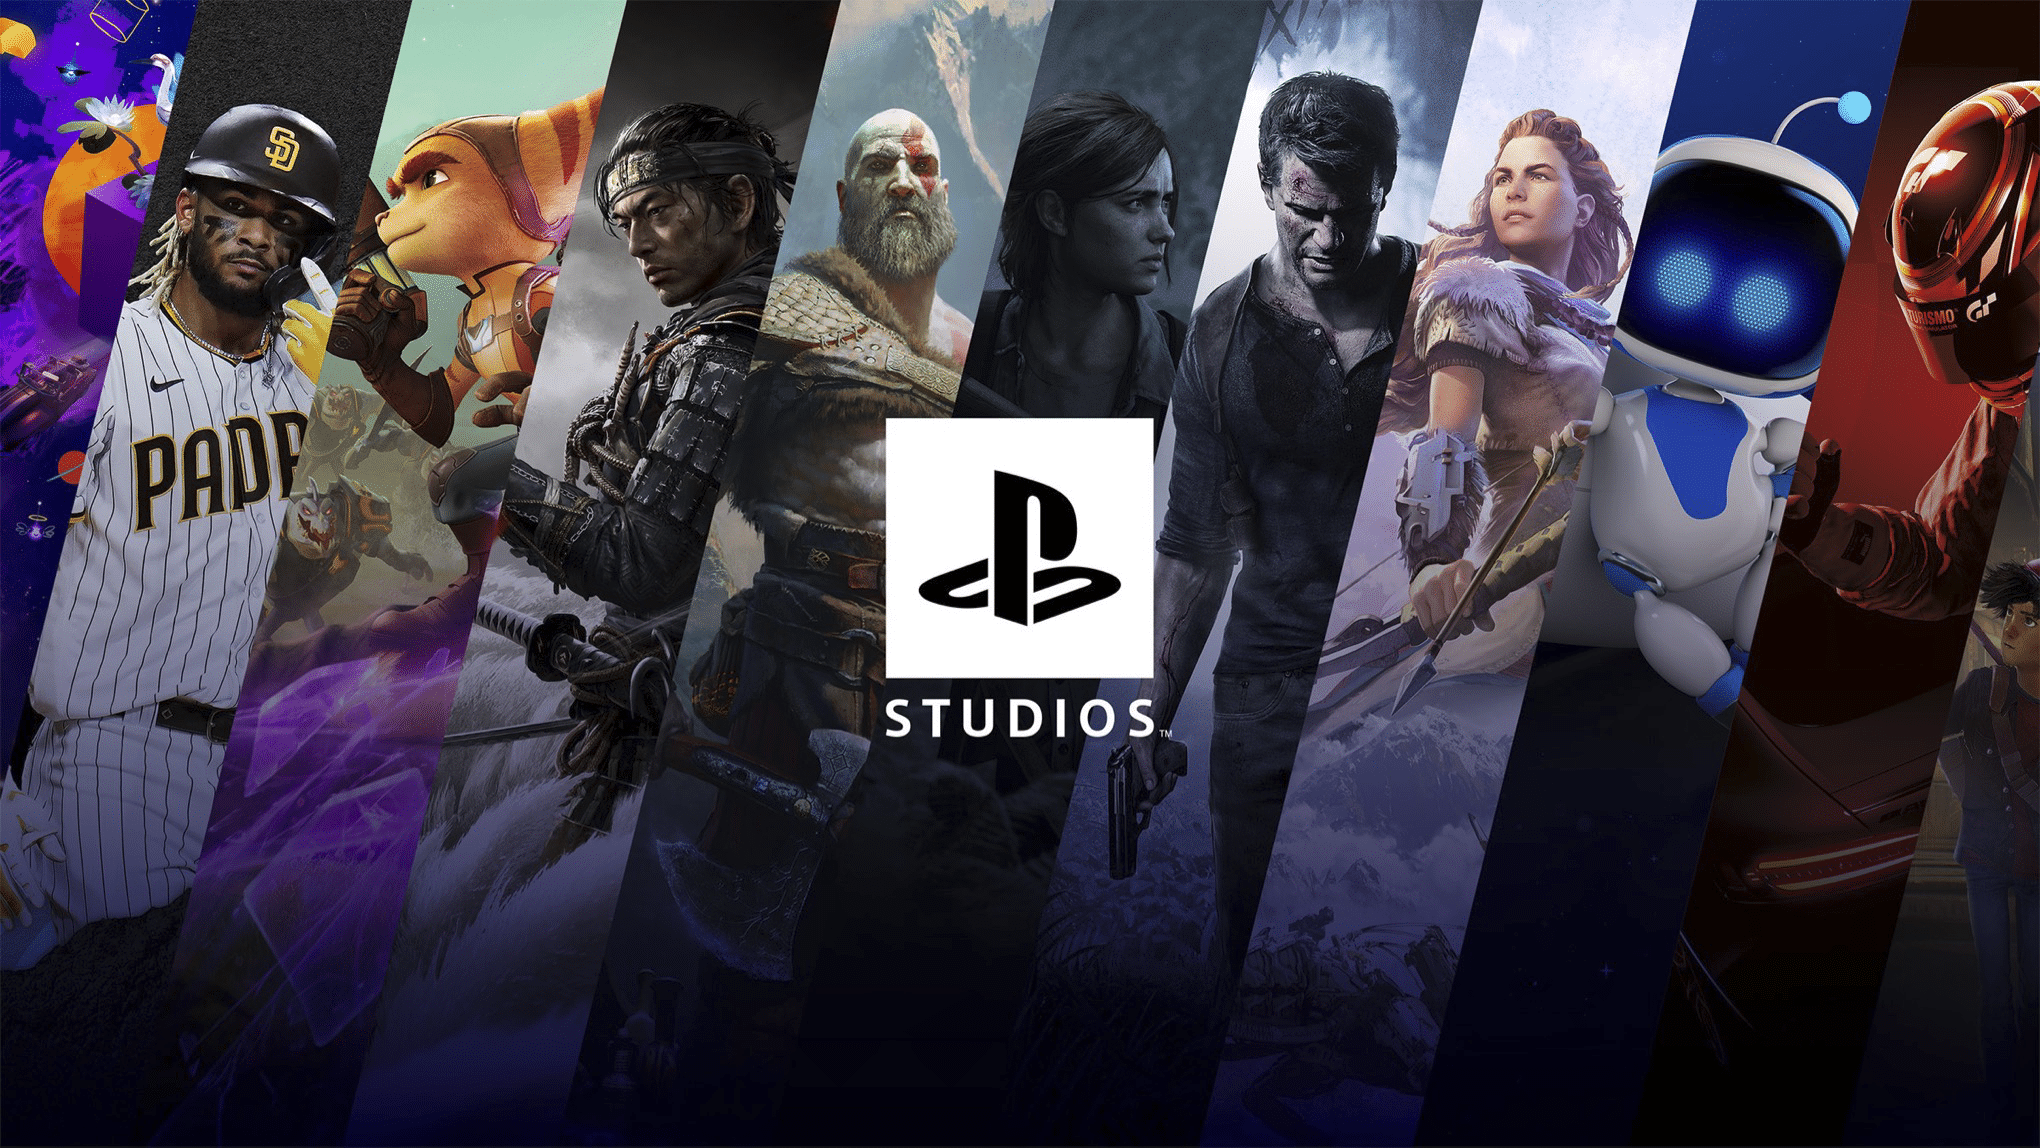 I've set out on a journey to play every PS Studios game.